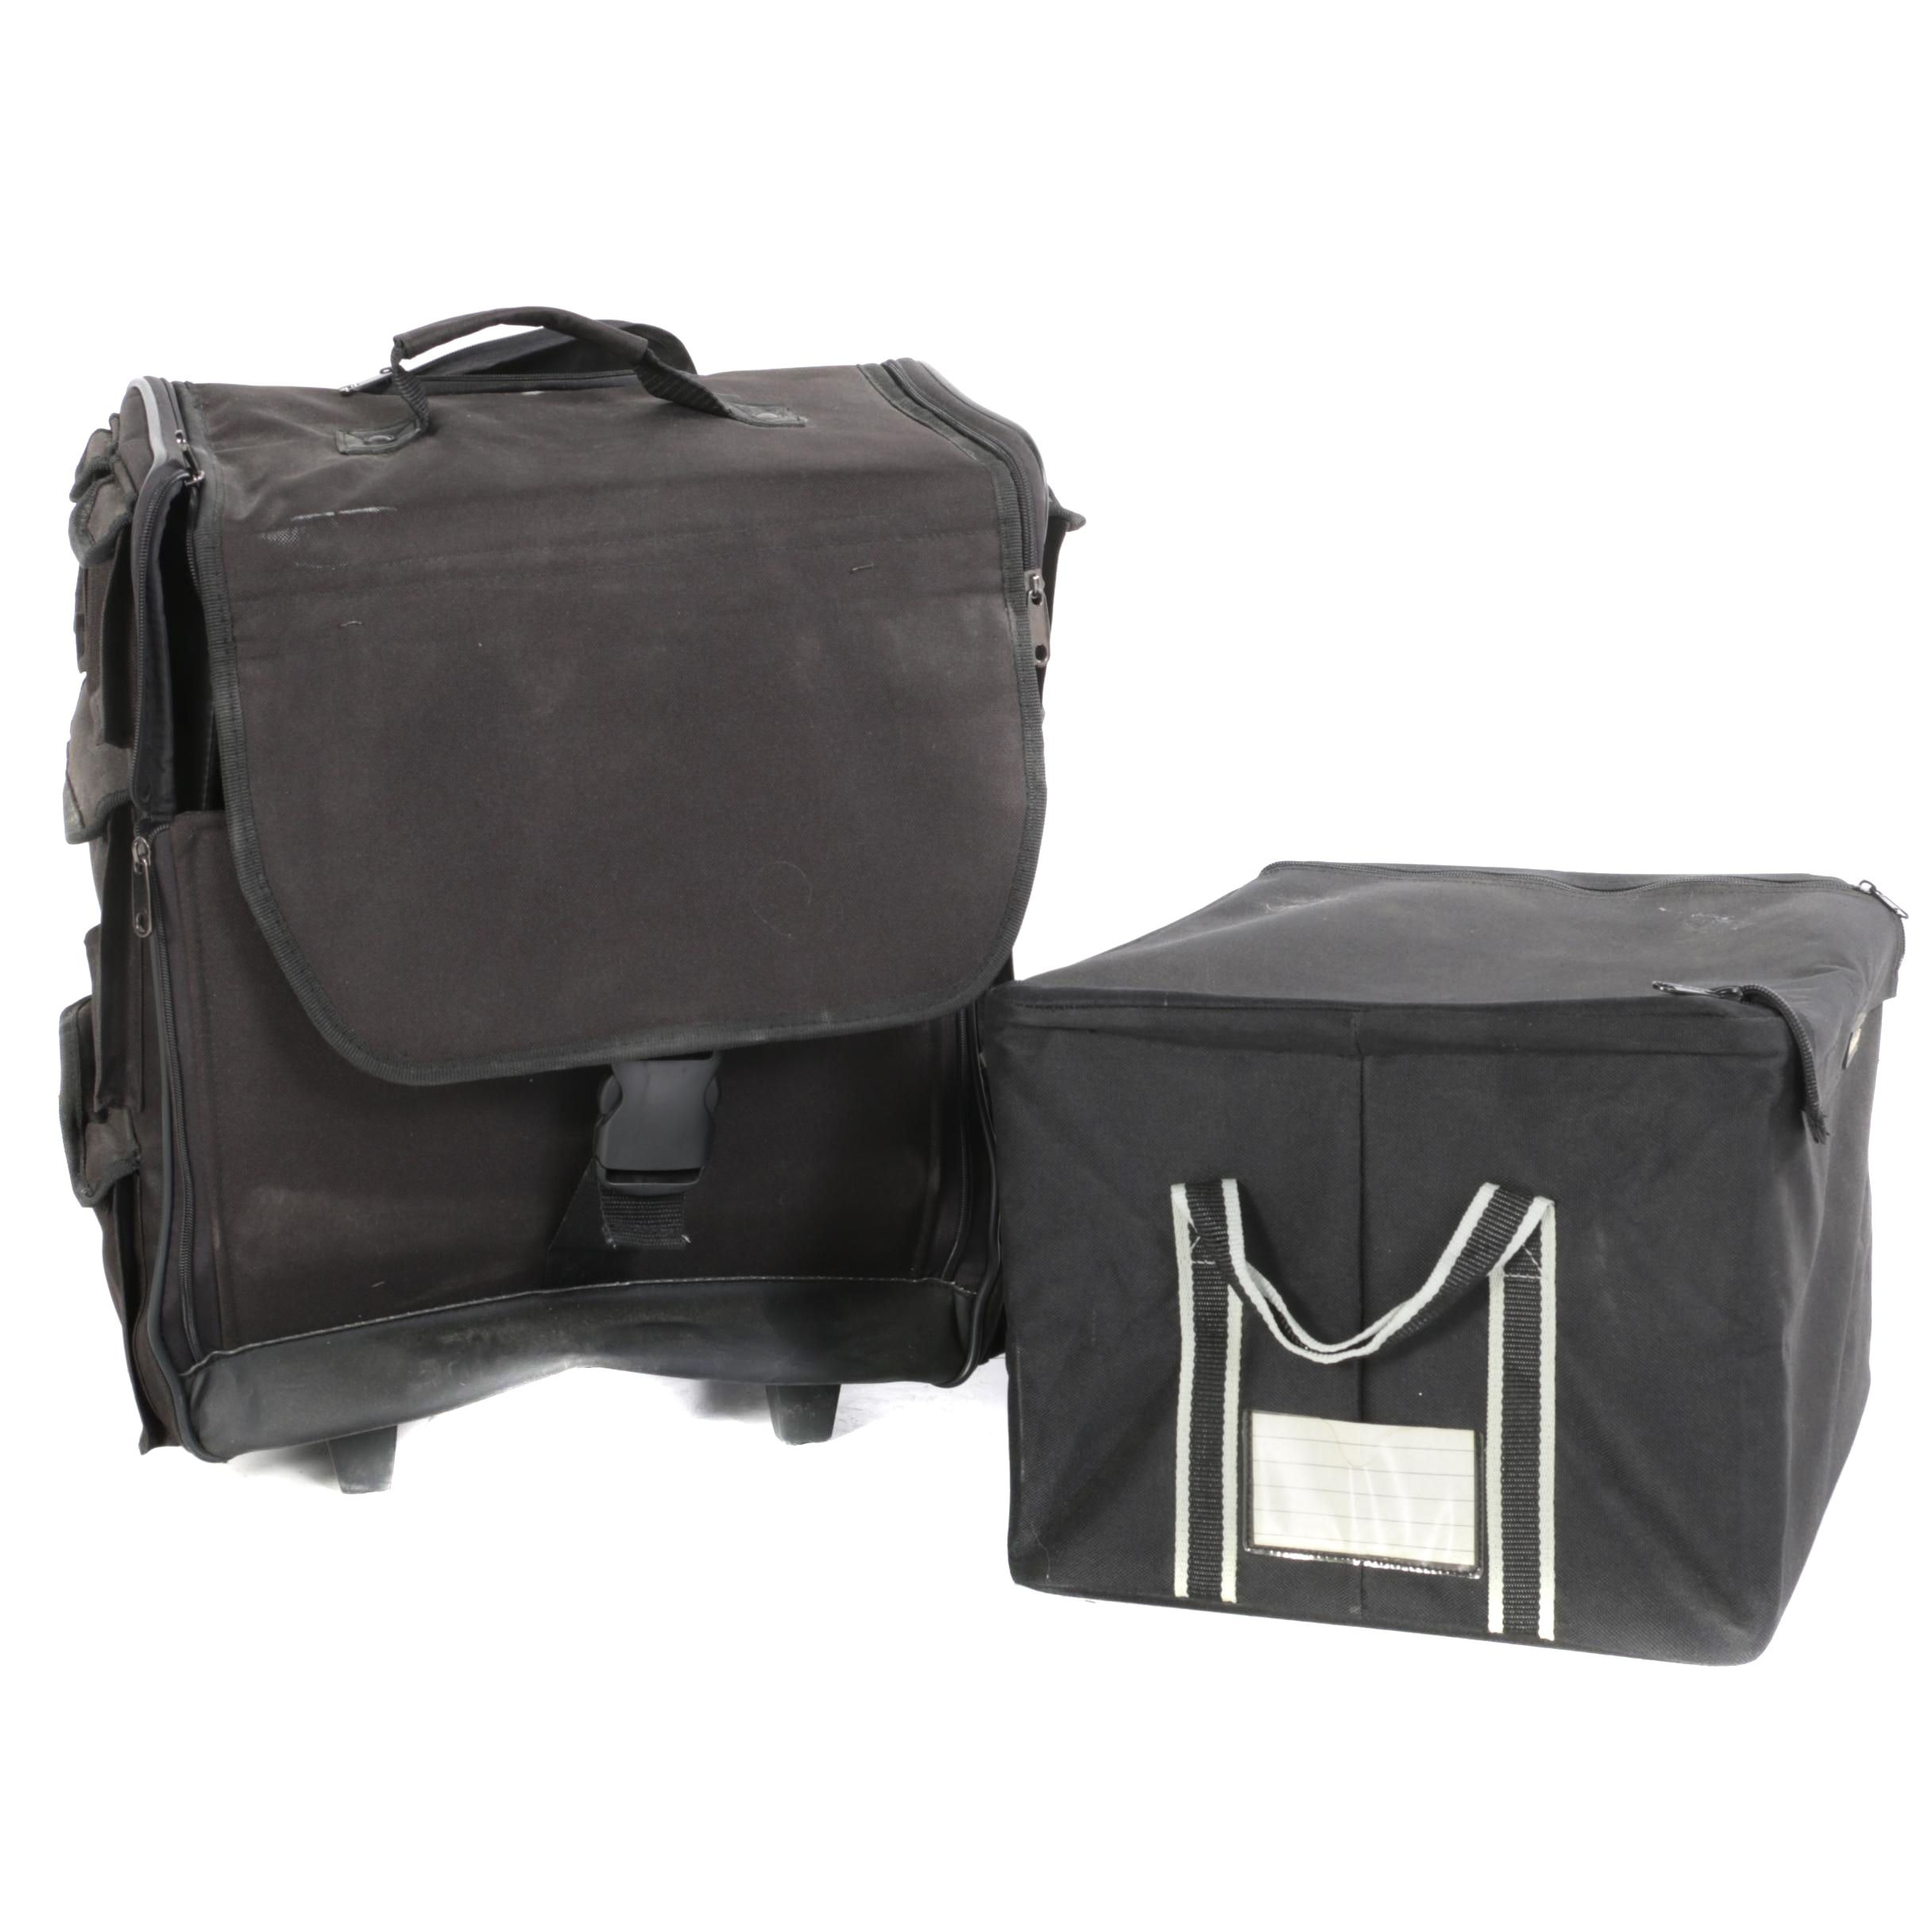 Leif Carry-On and Reisenthel Storage Boxes